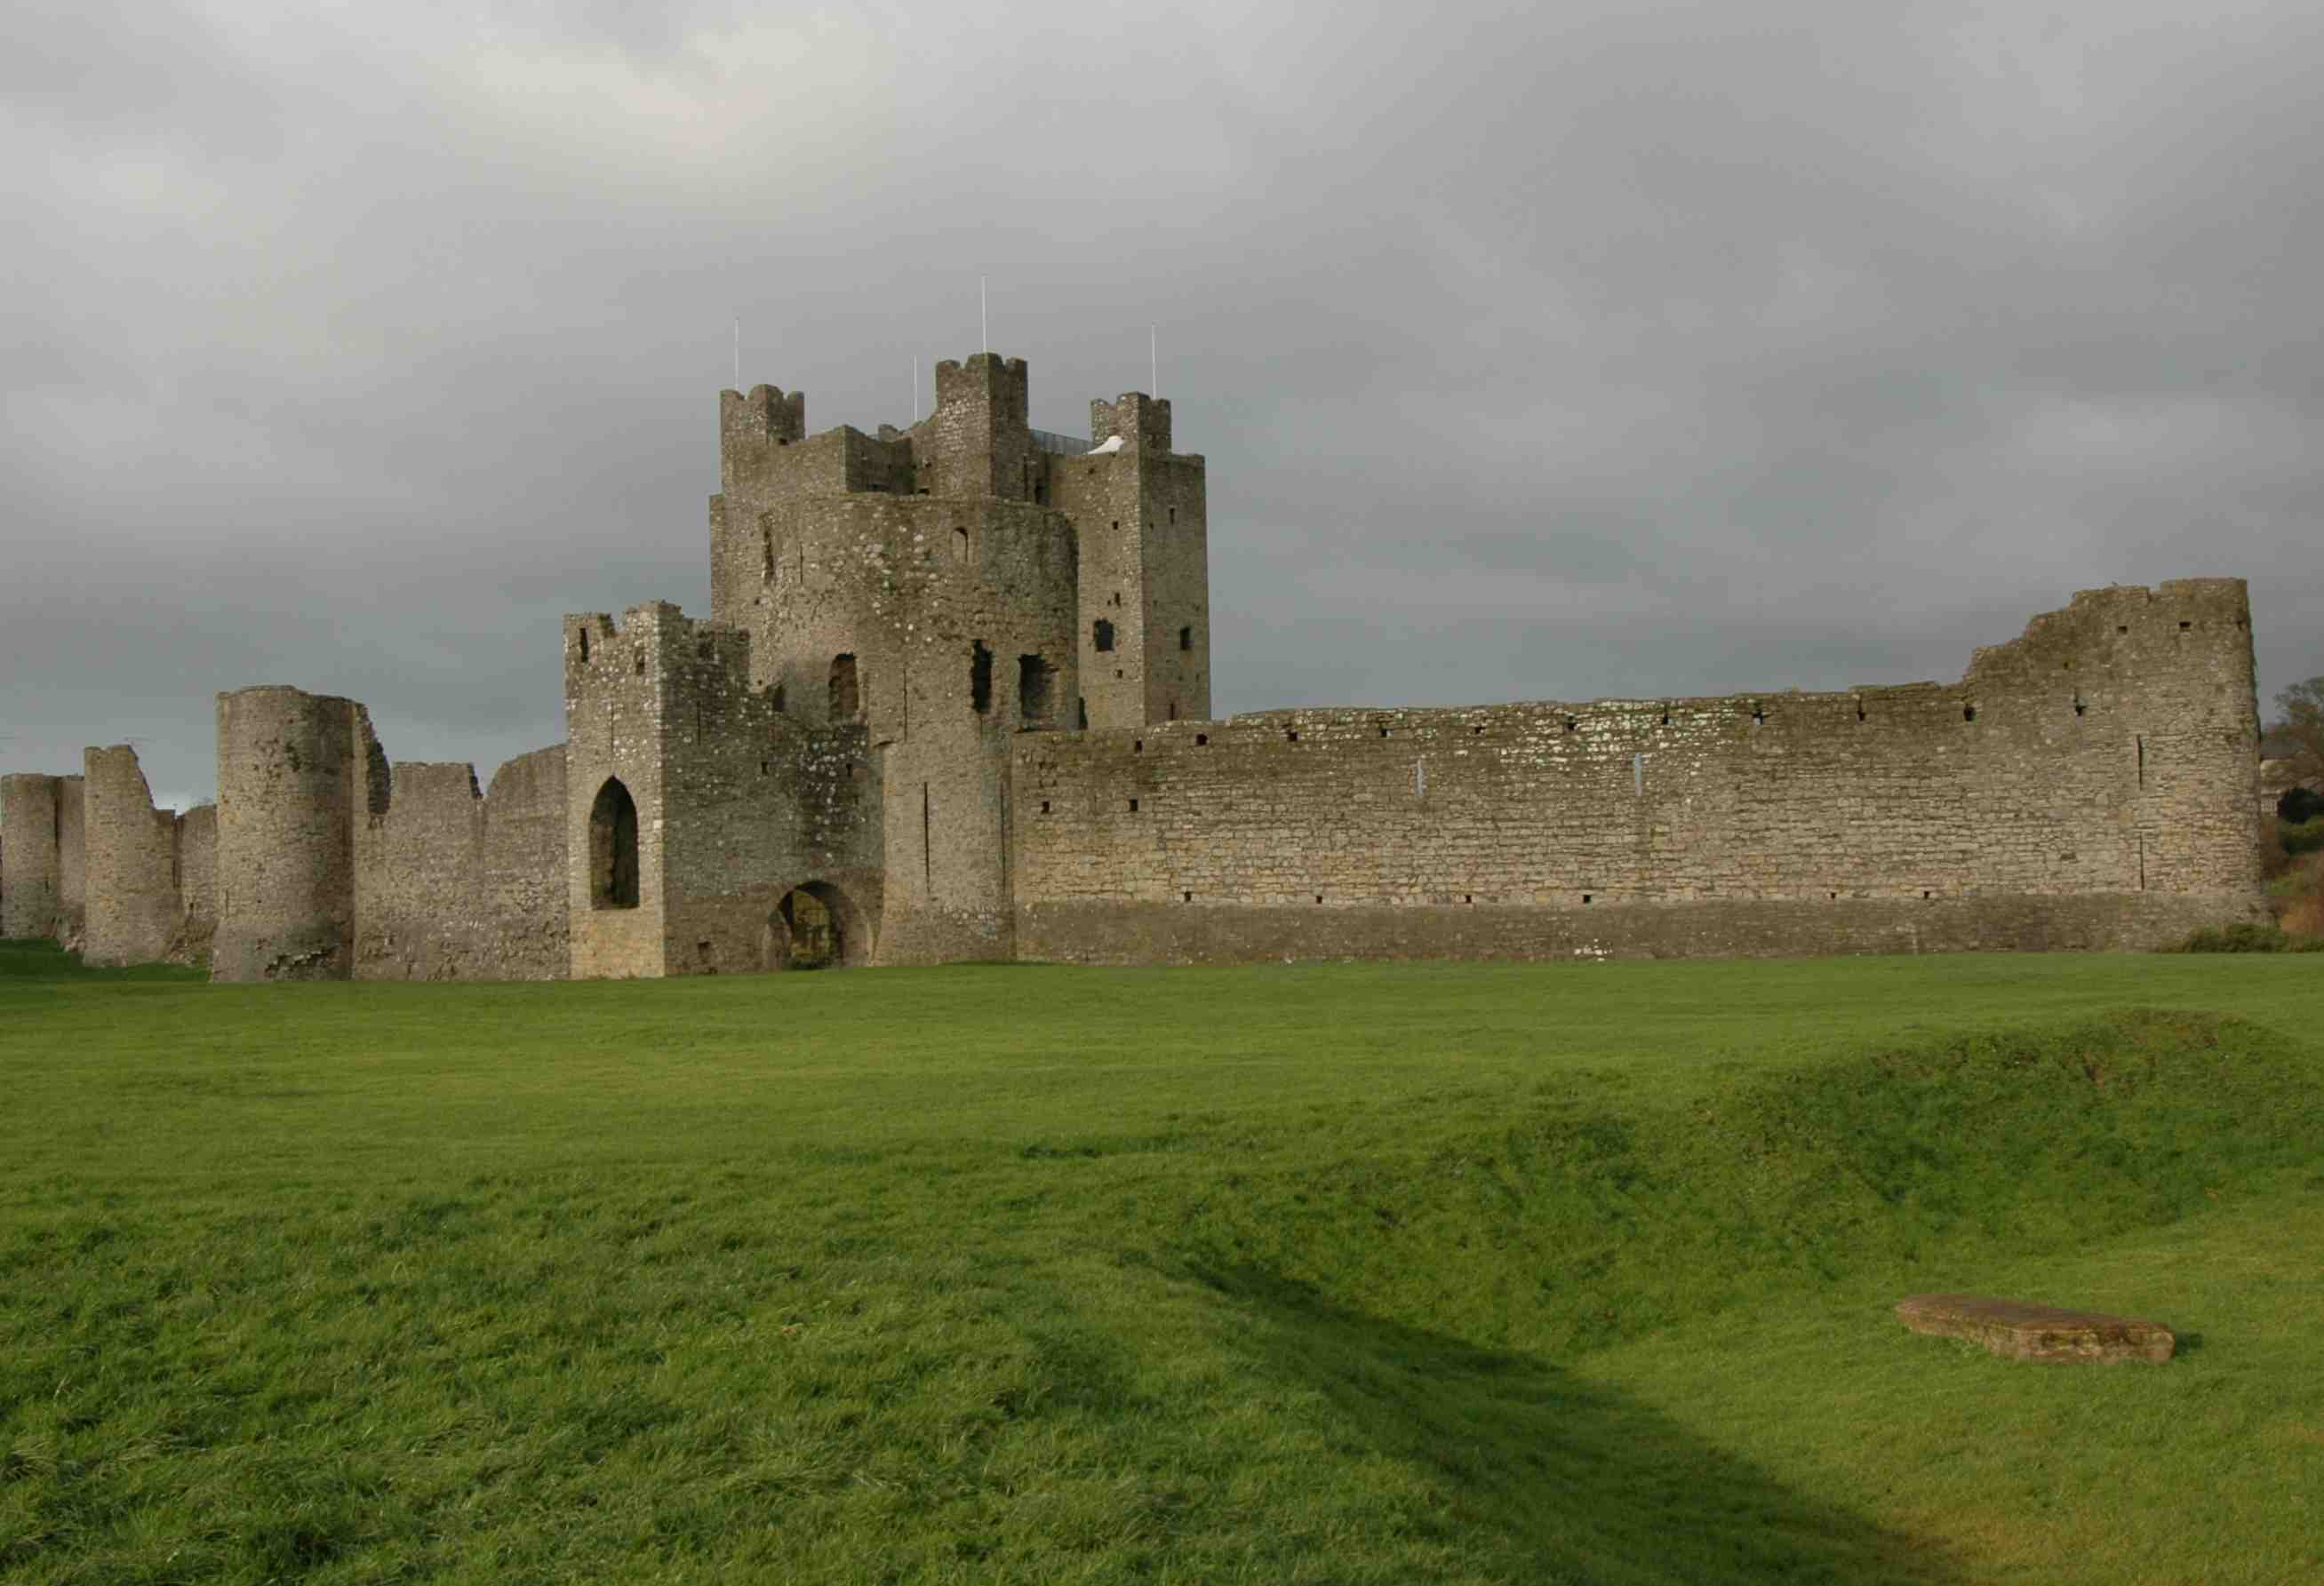 Trim Castle, the largest Anglo-Norman castle in Ireland